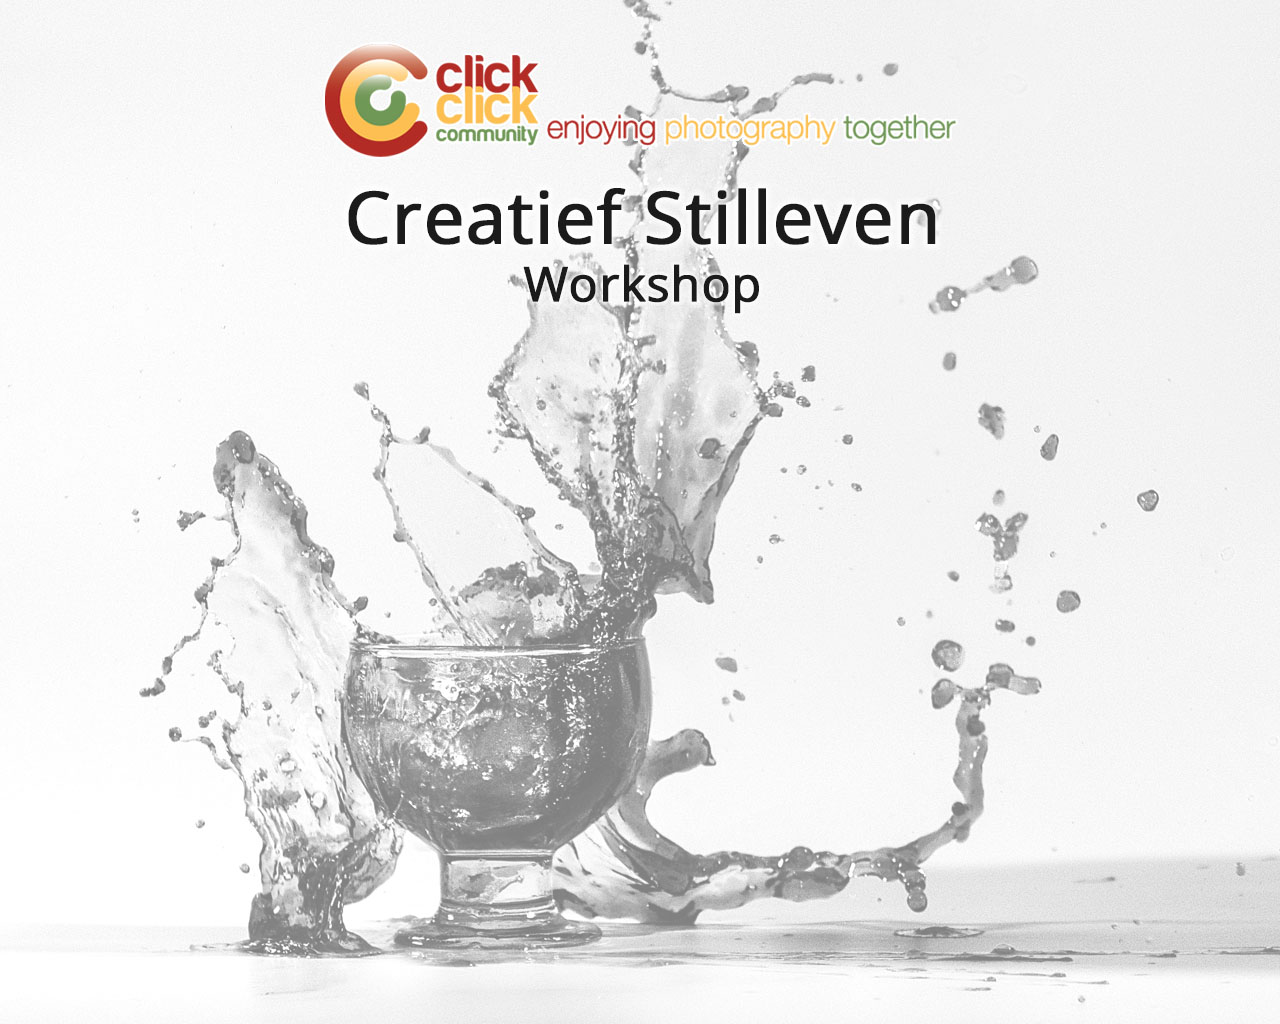 Creatief Stilleven Workshop by CCC FotoUnie